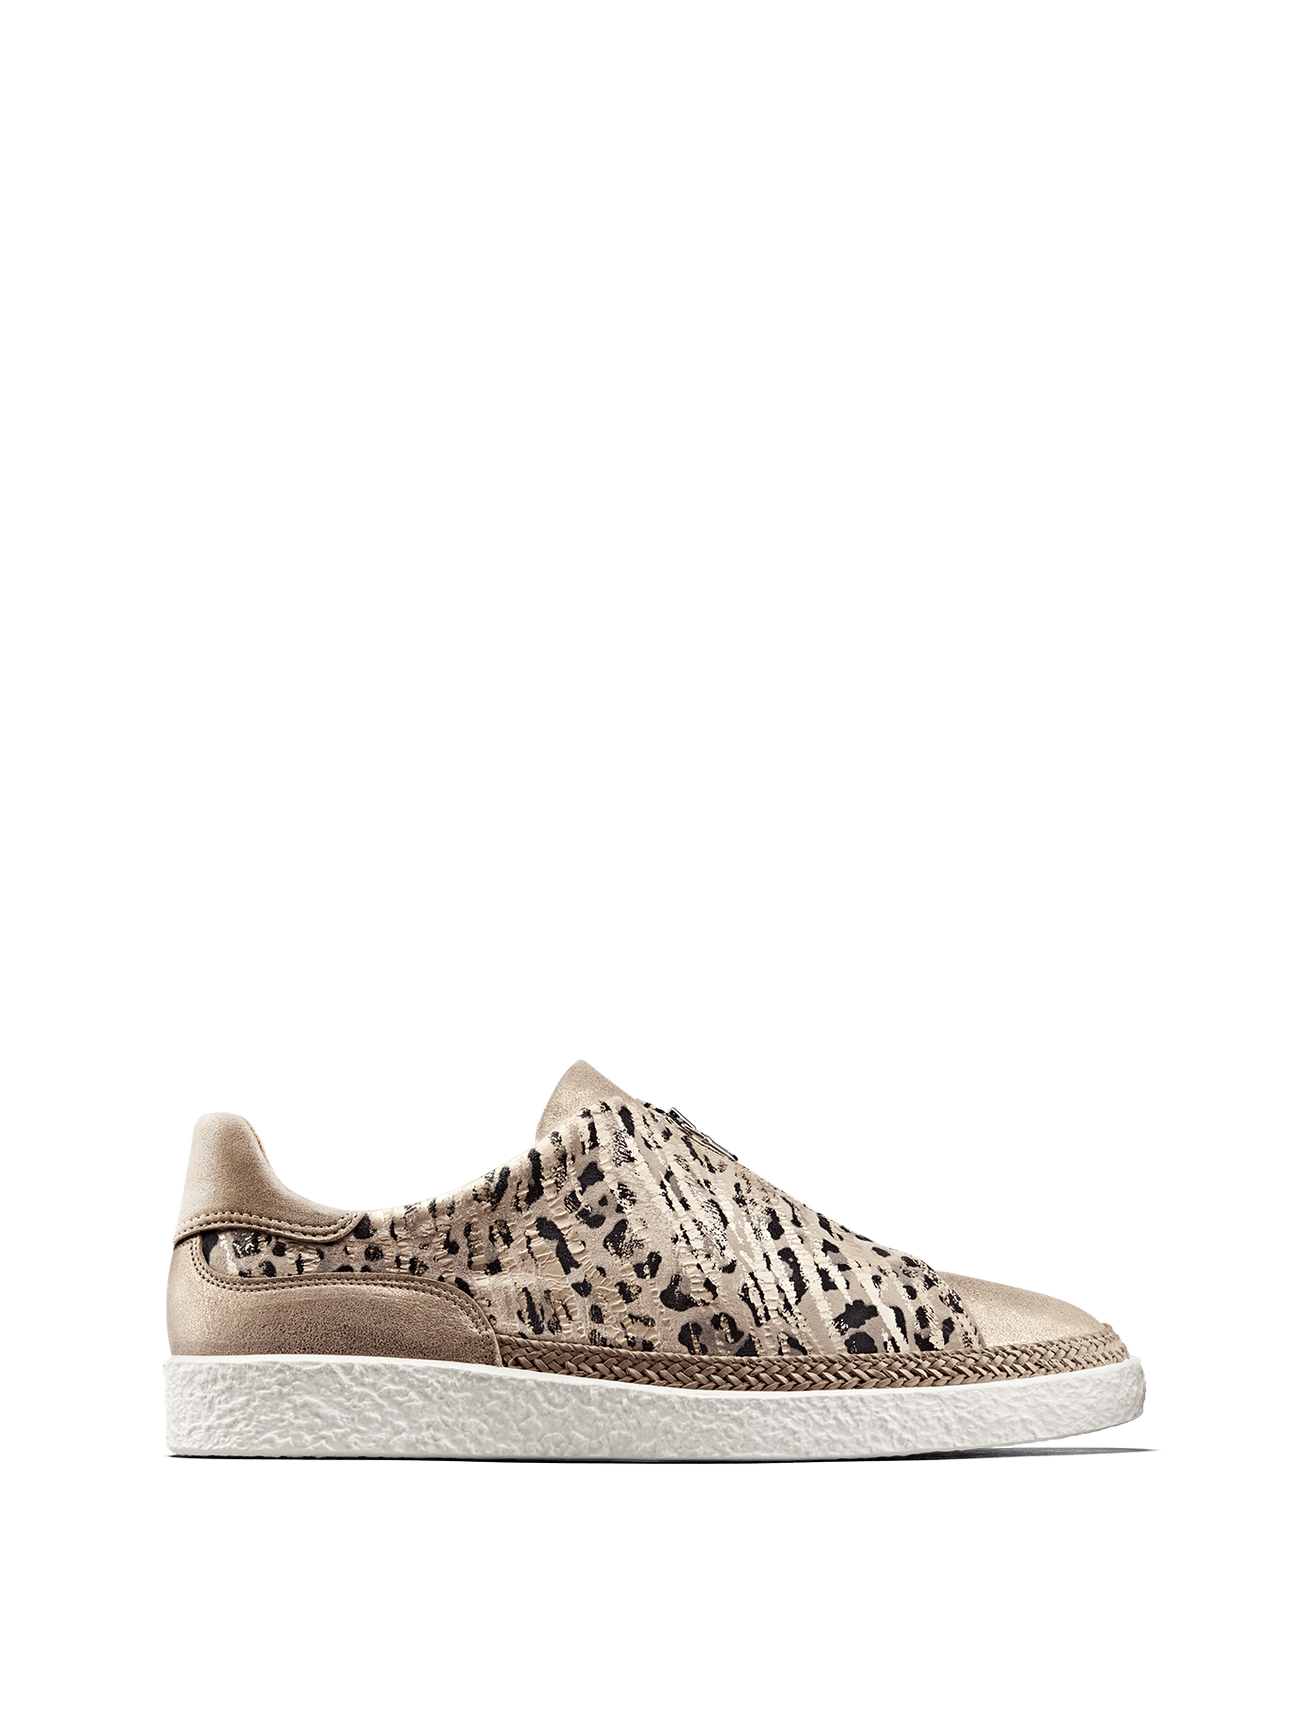 Ryde, a rose gold trainer with on-trend safari and metallic details.